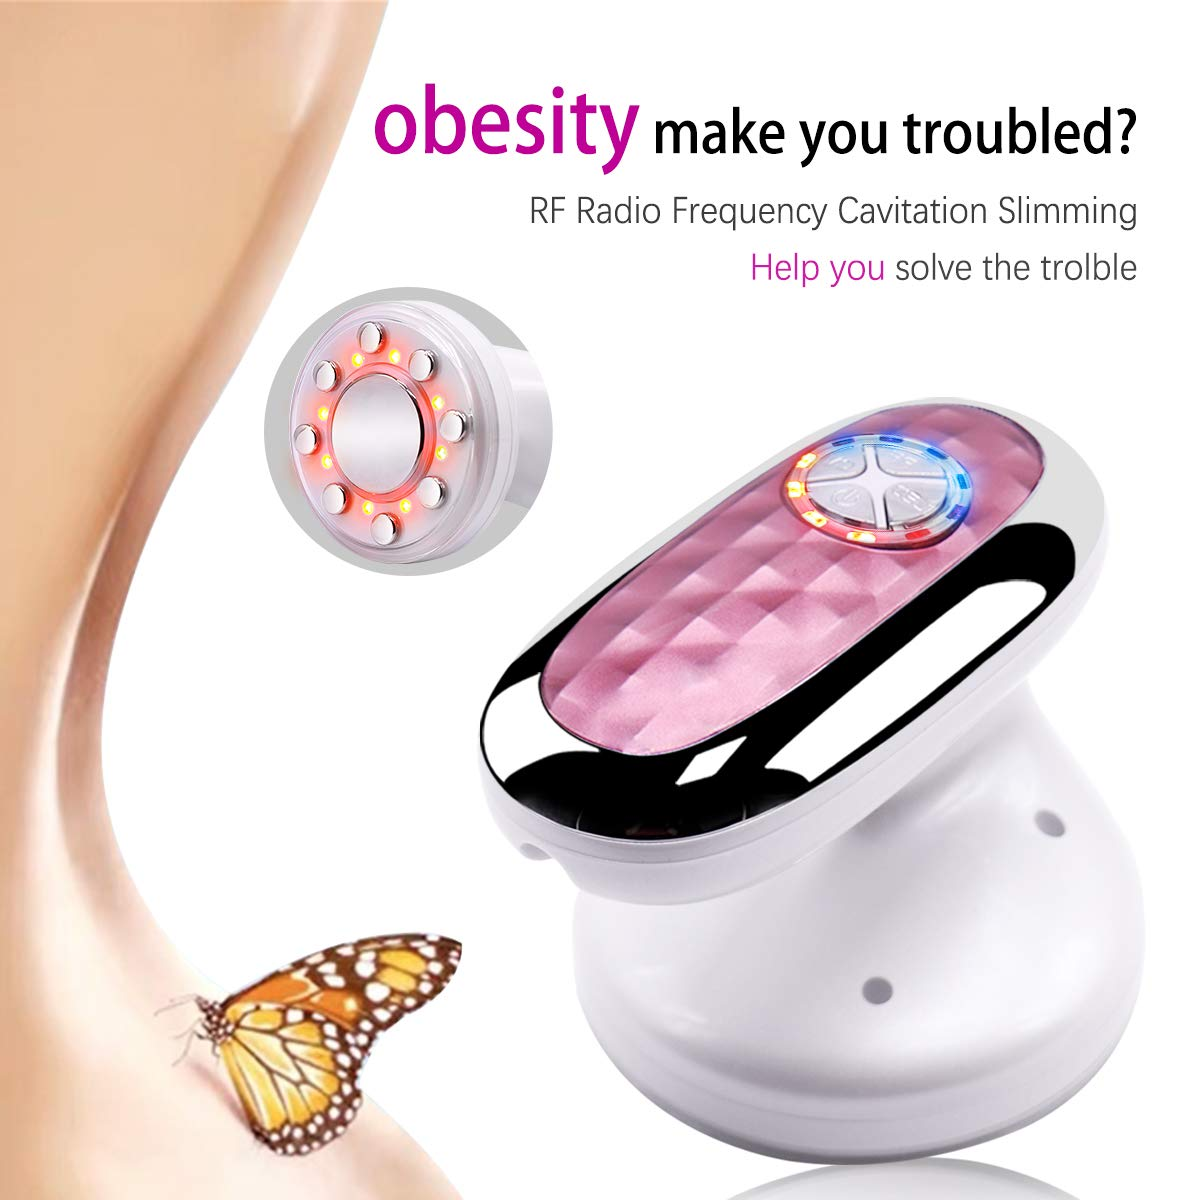 Weight Loss Massager 3 in 1 Red Light Body Shaping Machine R/F Anti Wrinkle Beauty Skin Tightening ToolsRechargeable Portable Body Fat Burner Device by OLIVIA PRICE